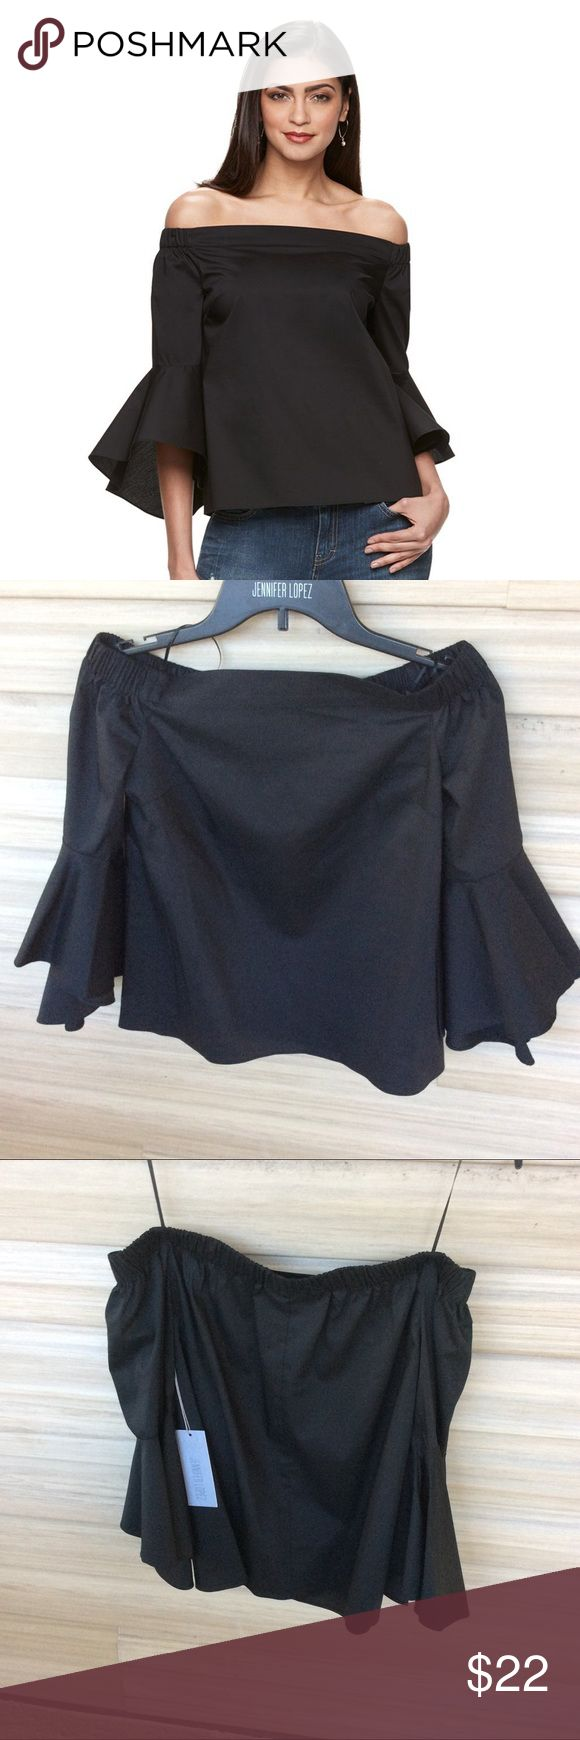 JLo Off the Shoulder Top Black statement top to show off your shoulders and eye catching bell sleeves.   >Condition: New  🚫 No Trades ✅ Discounted Bundles ✅ Reasonable Offers Jennifer Lopez Tops Blouses